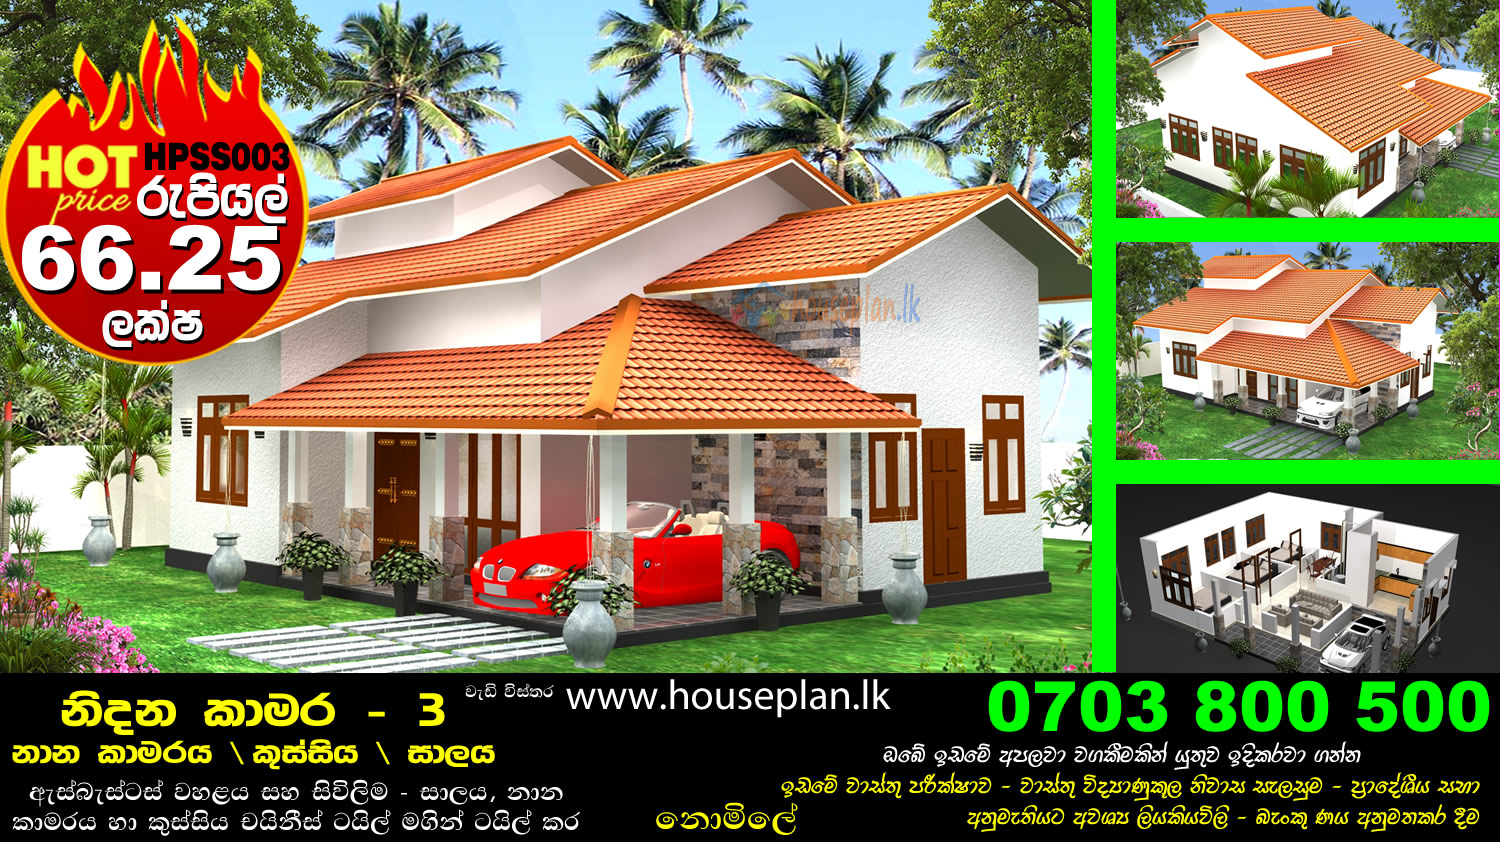 Sri lanka house plan best price of house contruction for House interior designs sri lanka